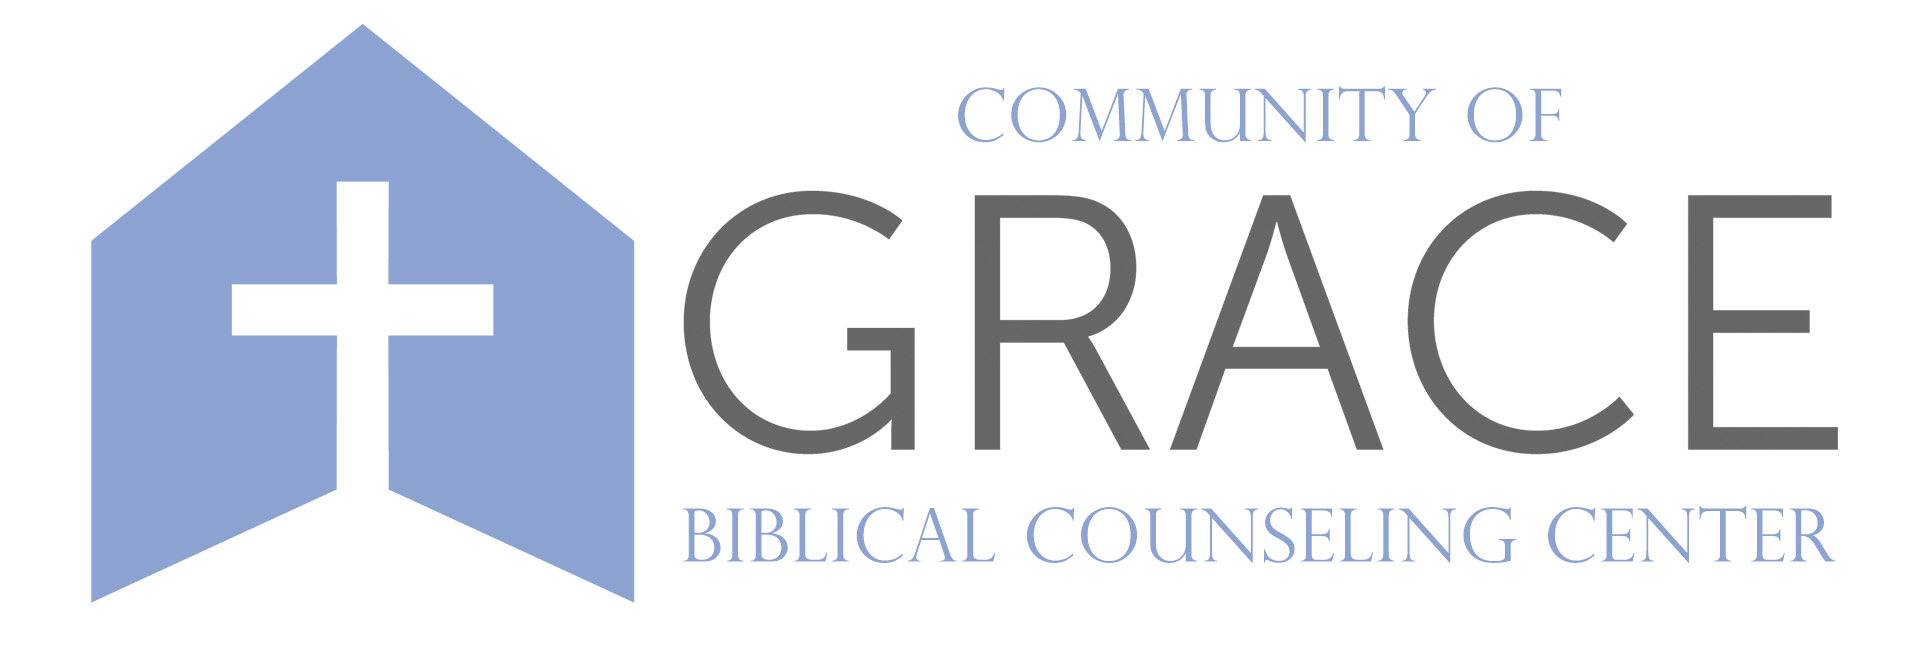 Community of Grace Biblical Counseling